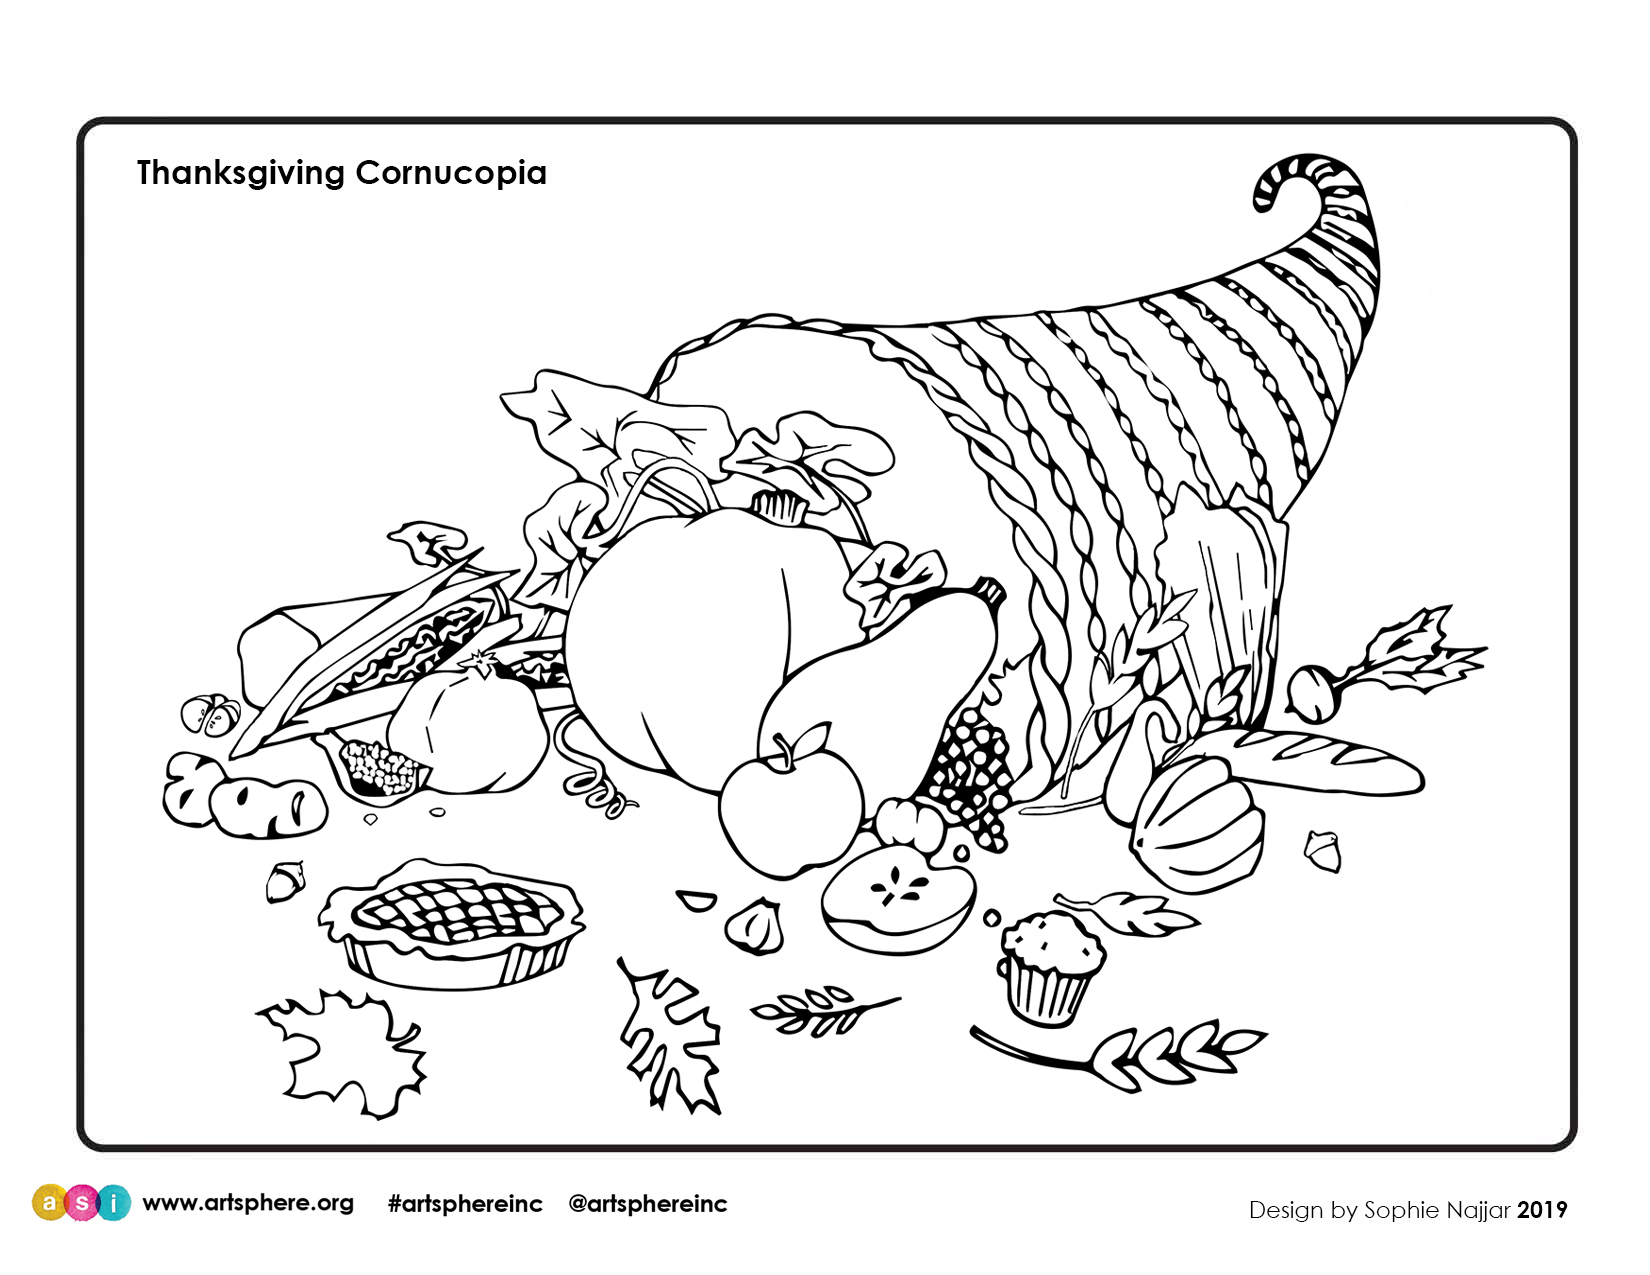 Thanksgiving Cornucopia Handout